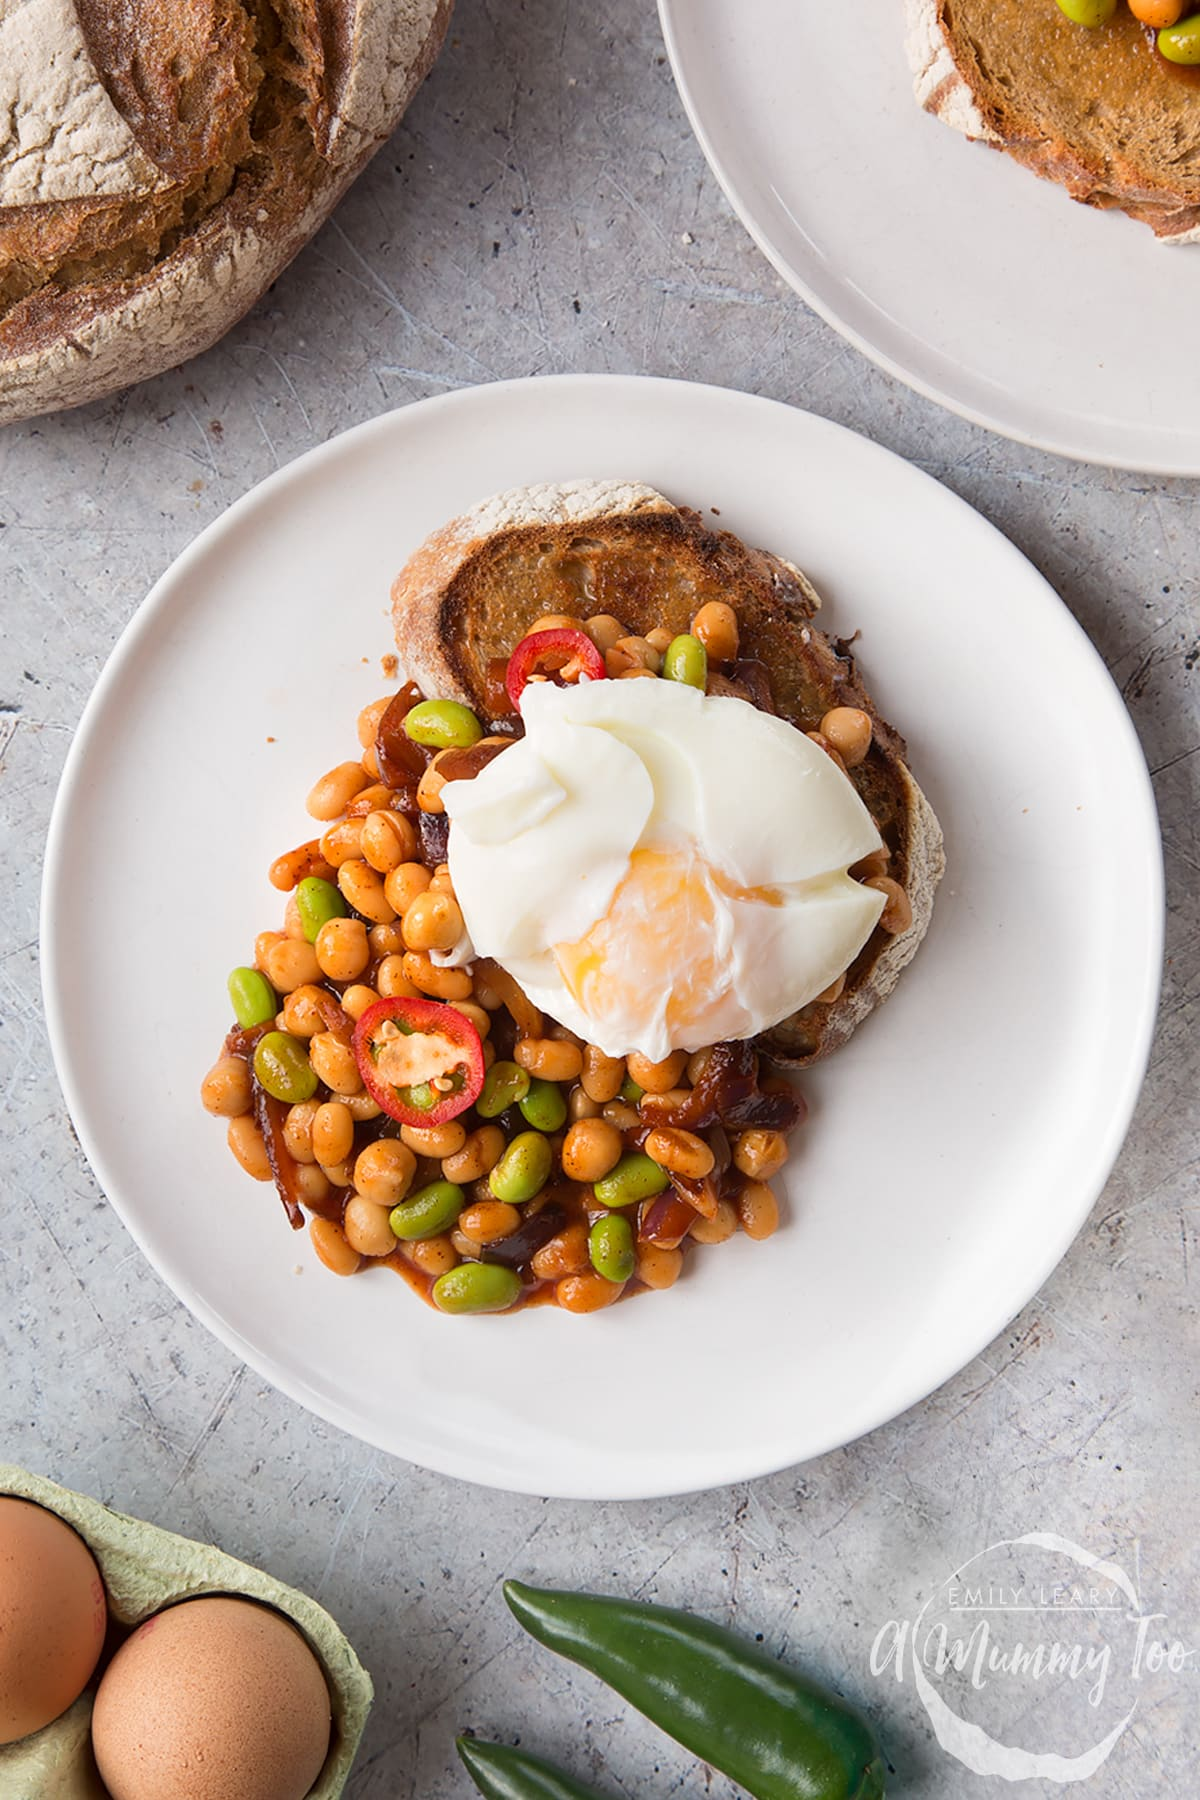 Breakfast beans with chilli, chickpeas and edamame served on sour dough toast with a poached egg on top. The yolk is not yet broken.